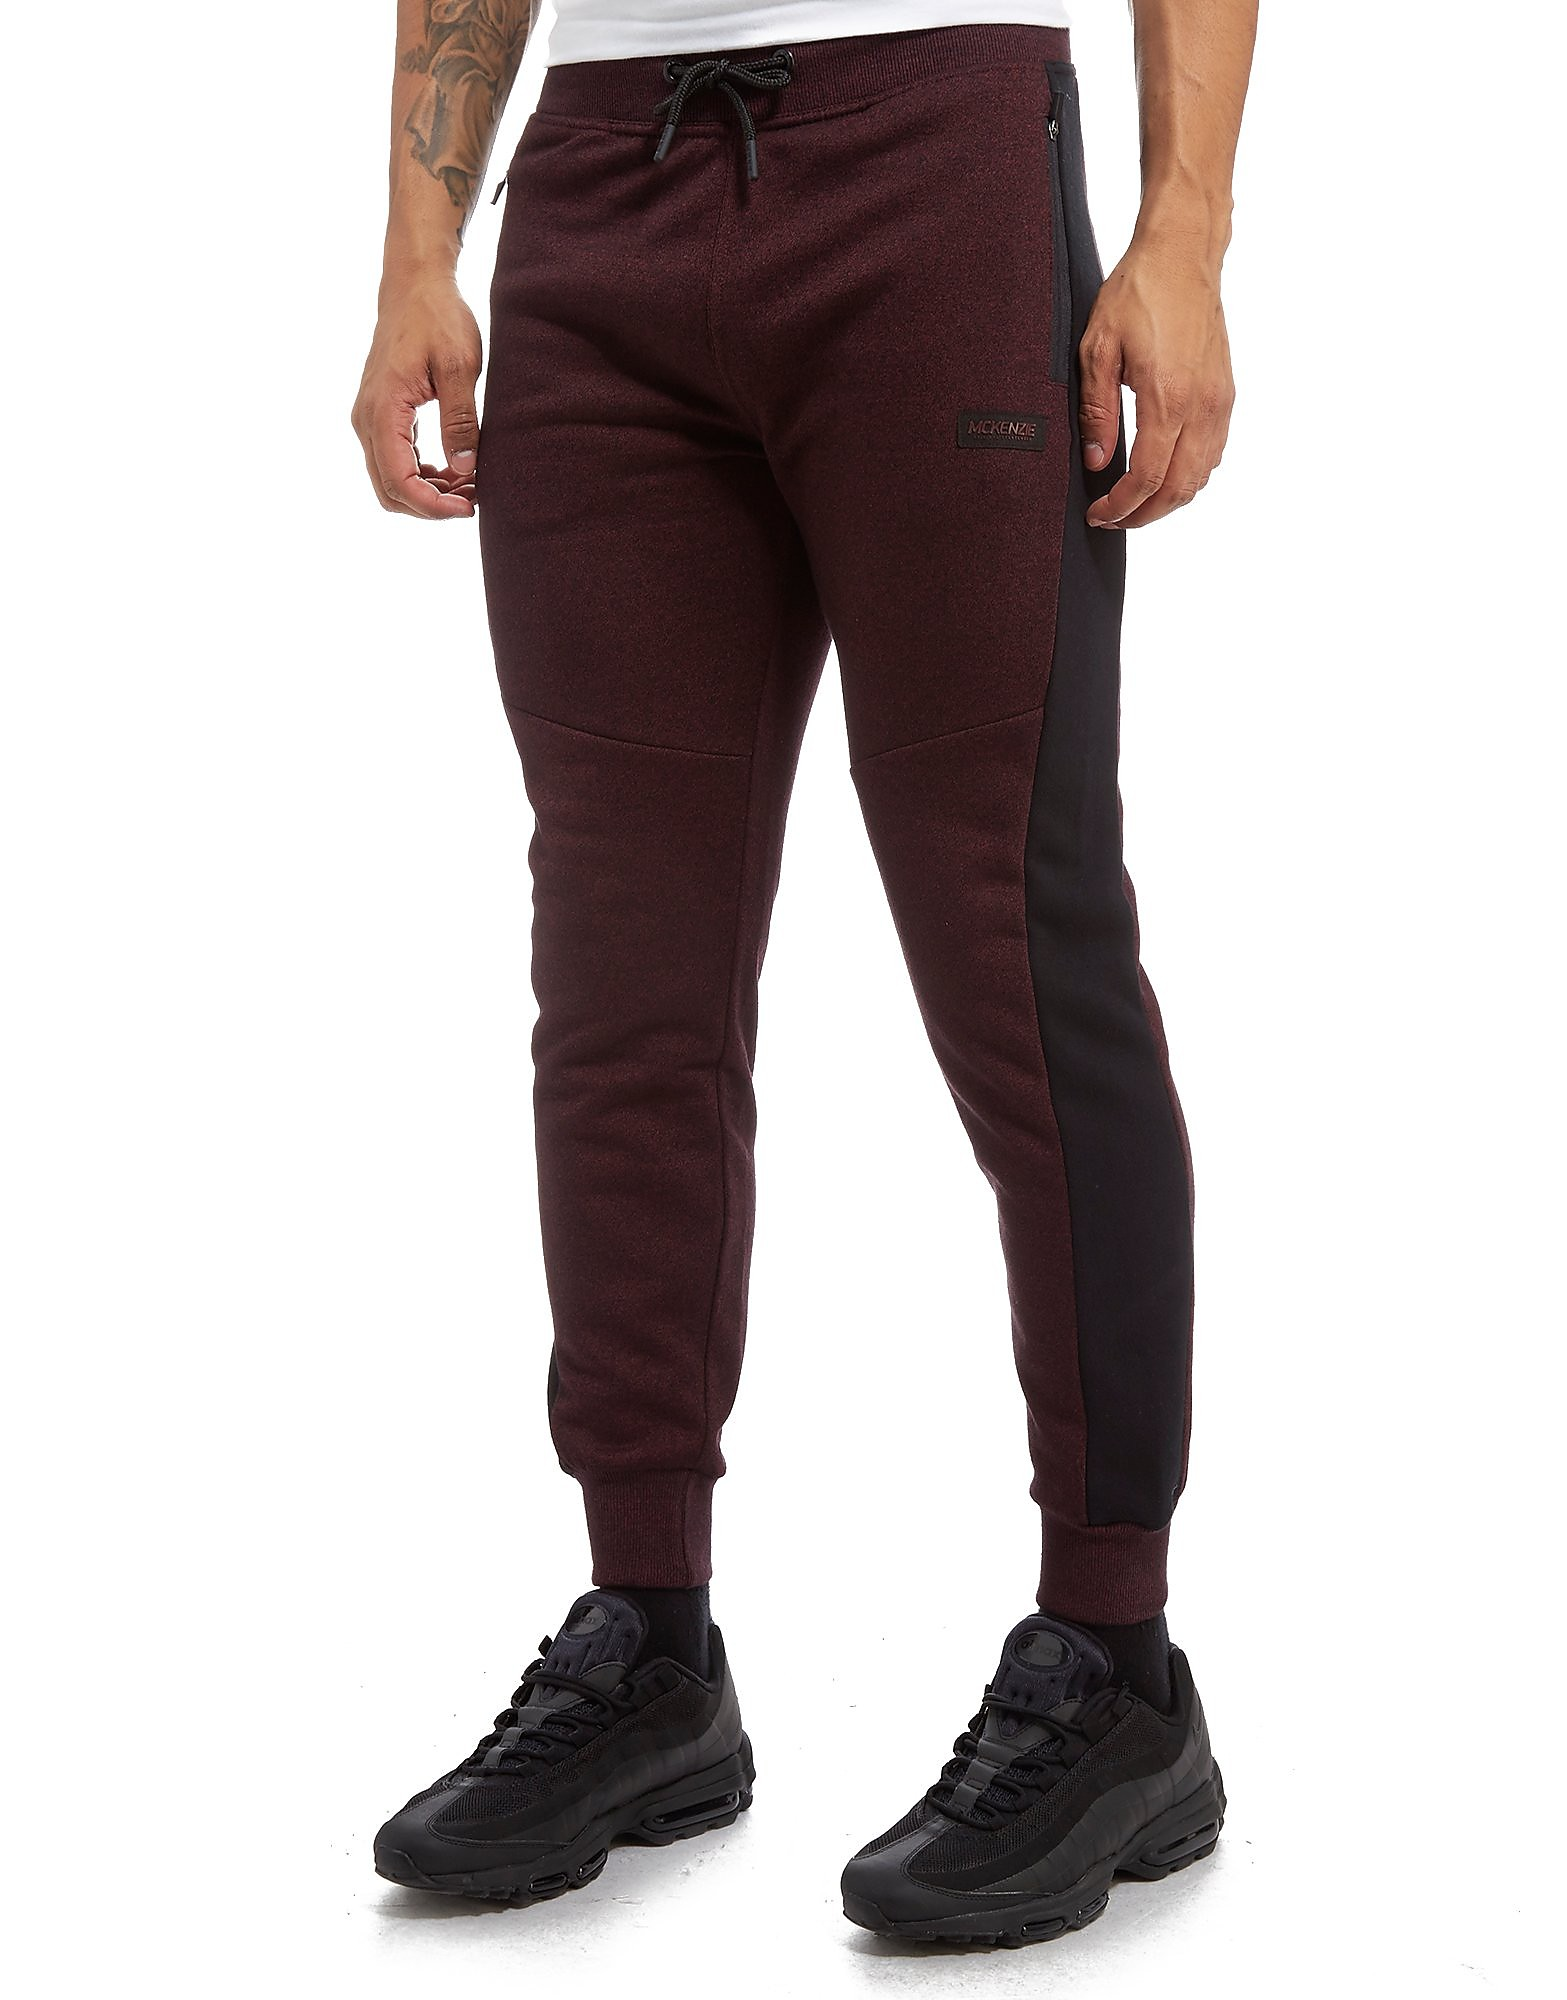 McKenzie Haket Joggers Homme - Only at JD - Burgundy, Burgundy